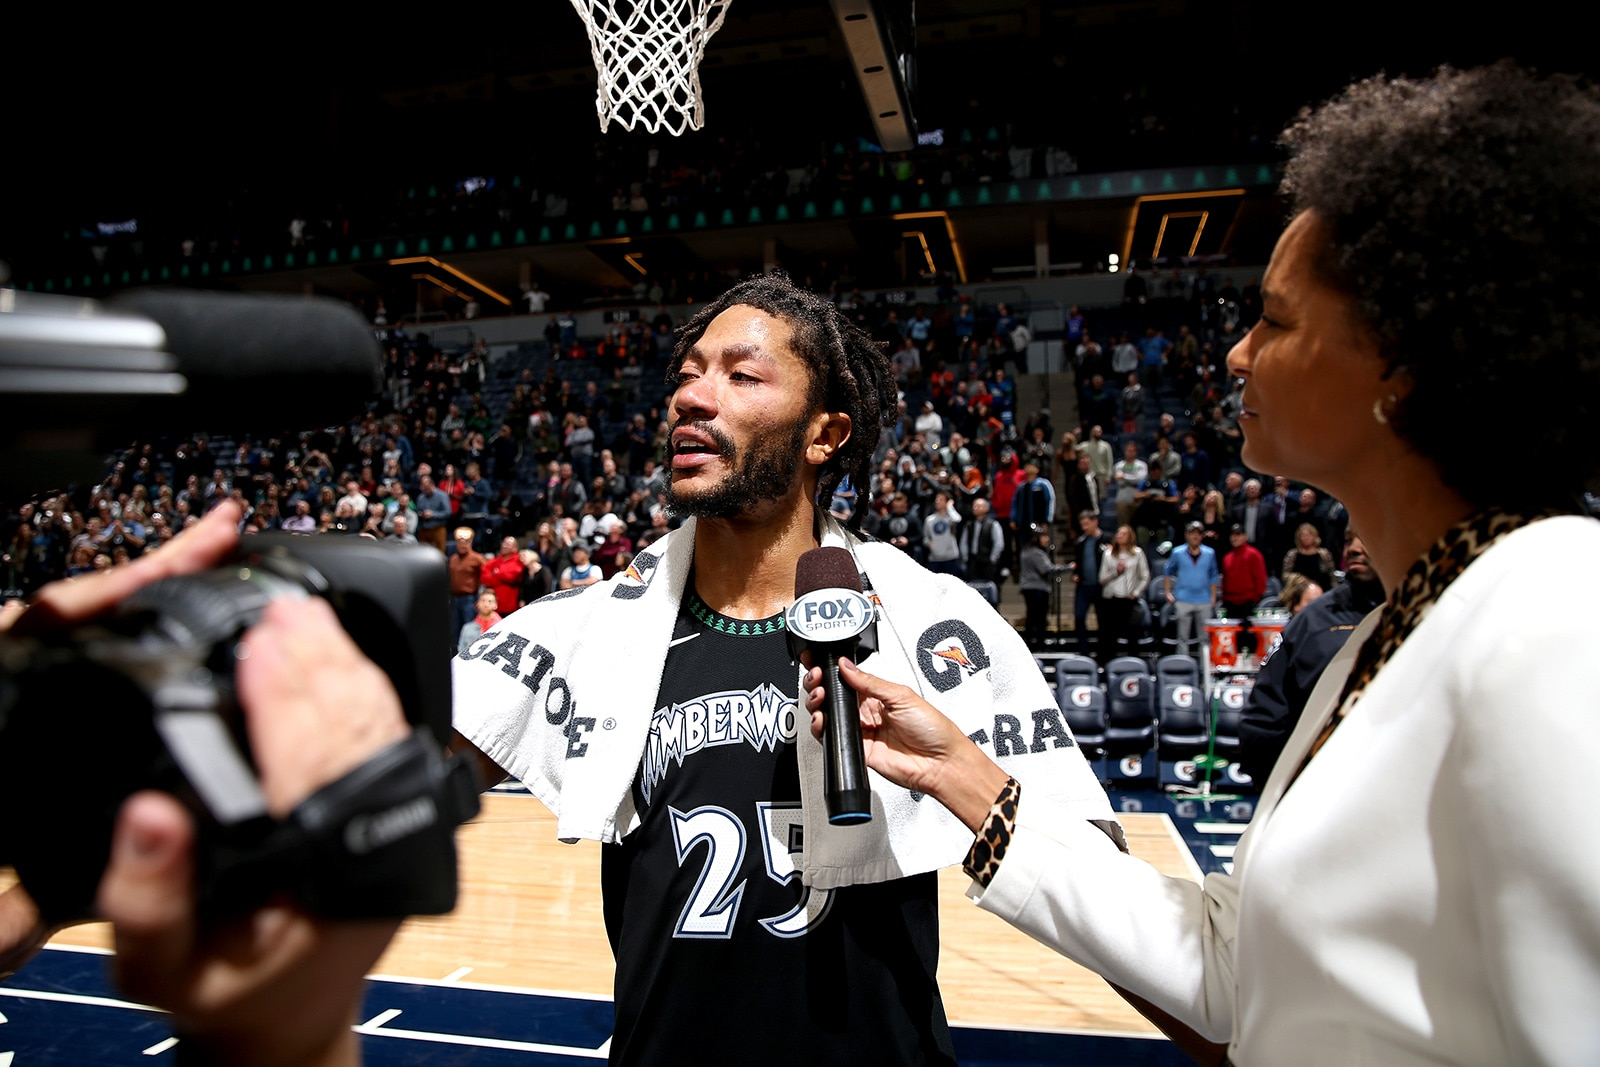 Derrick Rose Talks to the media after scoring 50 points for the Minnesota Timerwolves